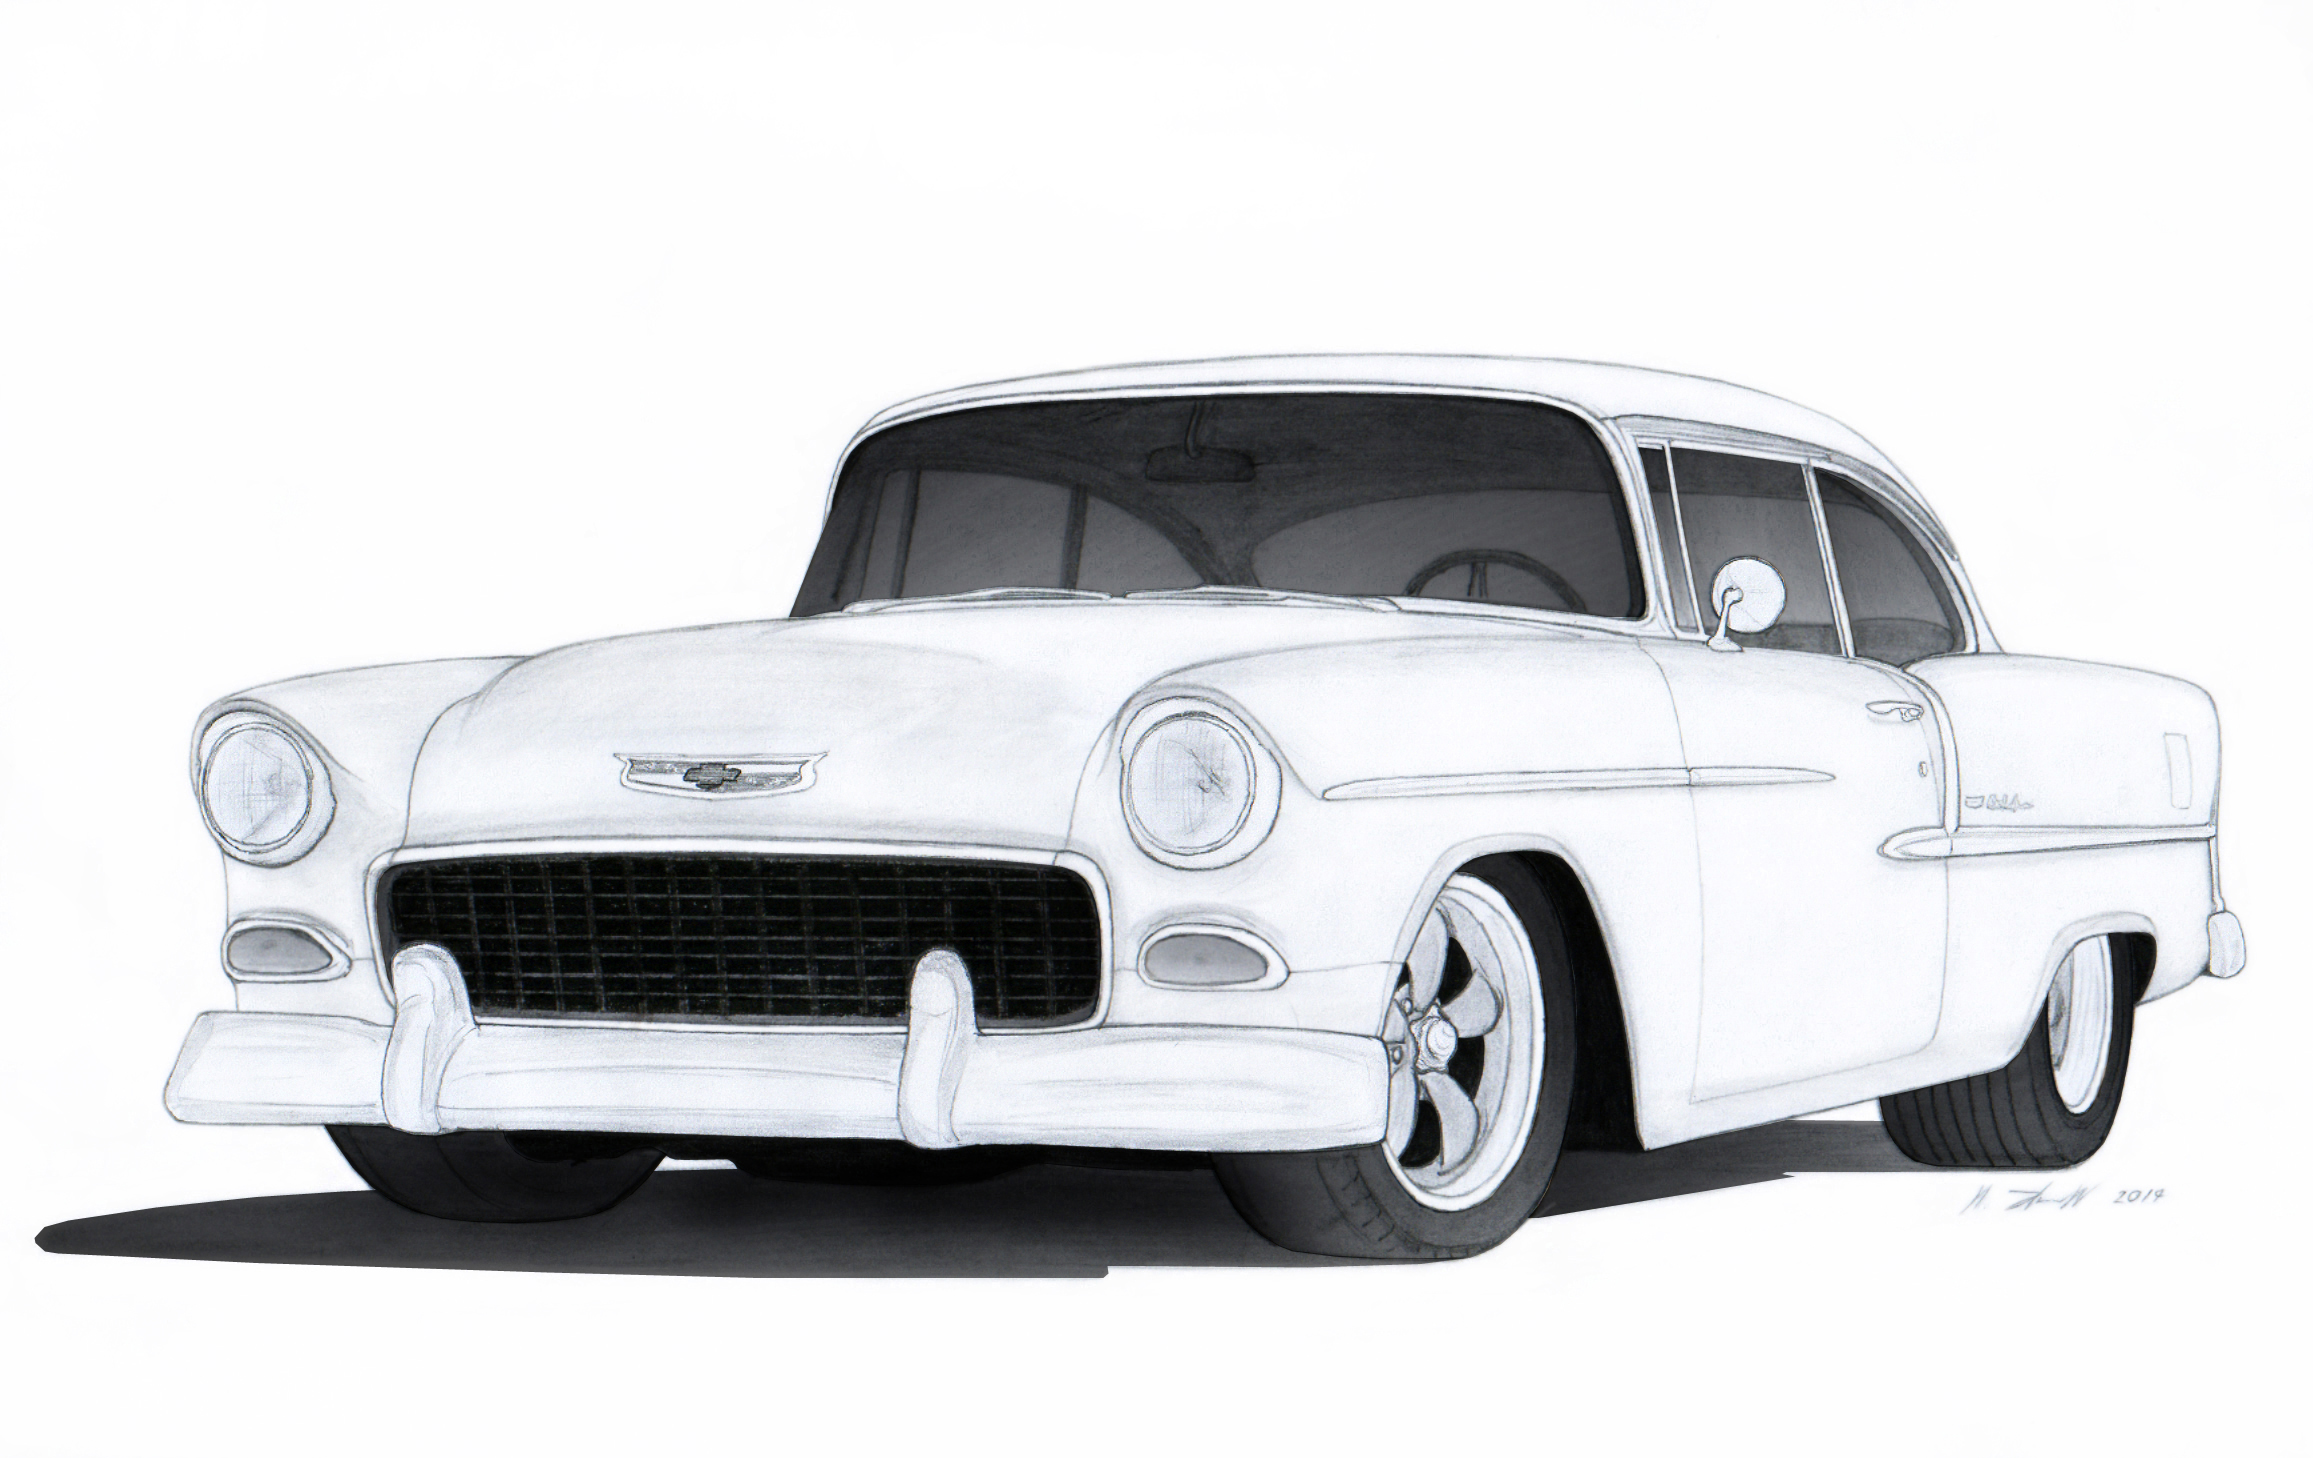 1955 chevrolet bel air drawing by vertualissimo d7q8fn6 besides  together with Free Beaumont Car Coloring Supercar Street 02 in addition cv690001 also c5d4c8c30d98555335a3fd1240fe4913 in addition cm670001 besides Chevy Camaro Line art by LPAGAN401 further 1960 chevrolet impala pro touring drawing by vertualissimo d7mgl7y besides muscle car 05 1968 chevelle malibu ss as well  as well . on 1967 chevelle coloring pages printable